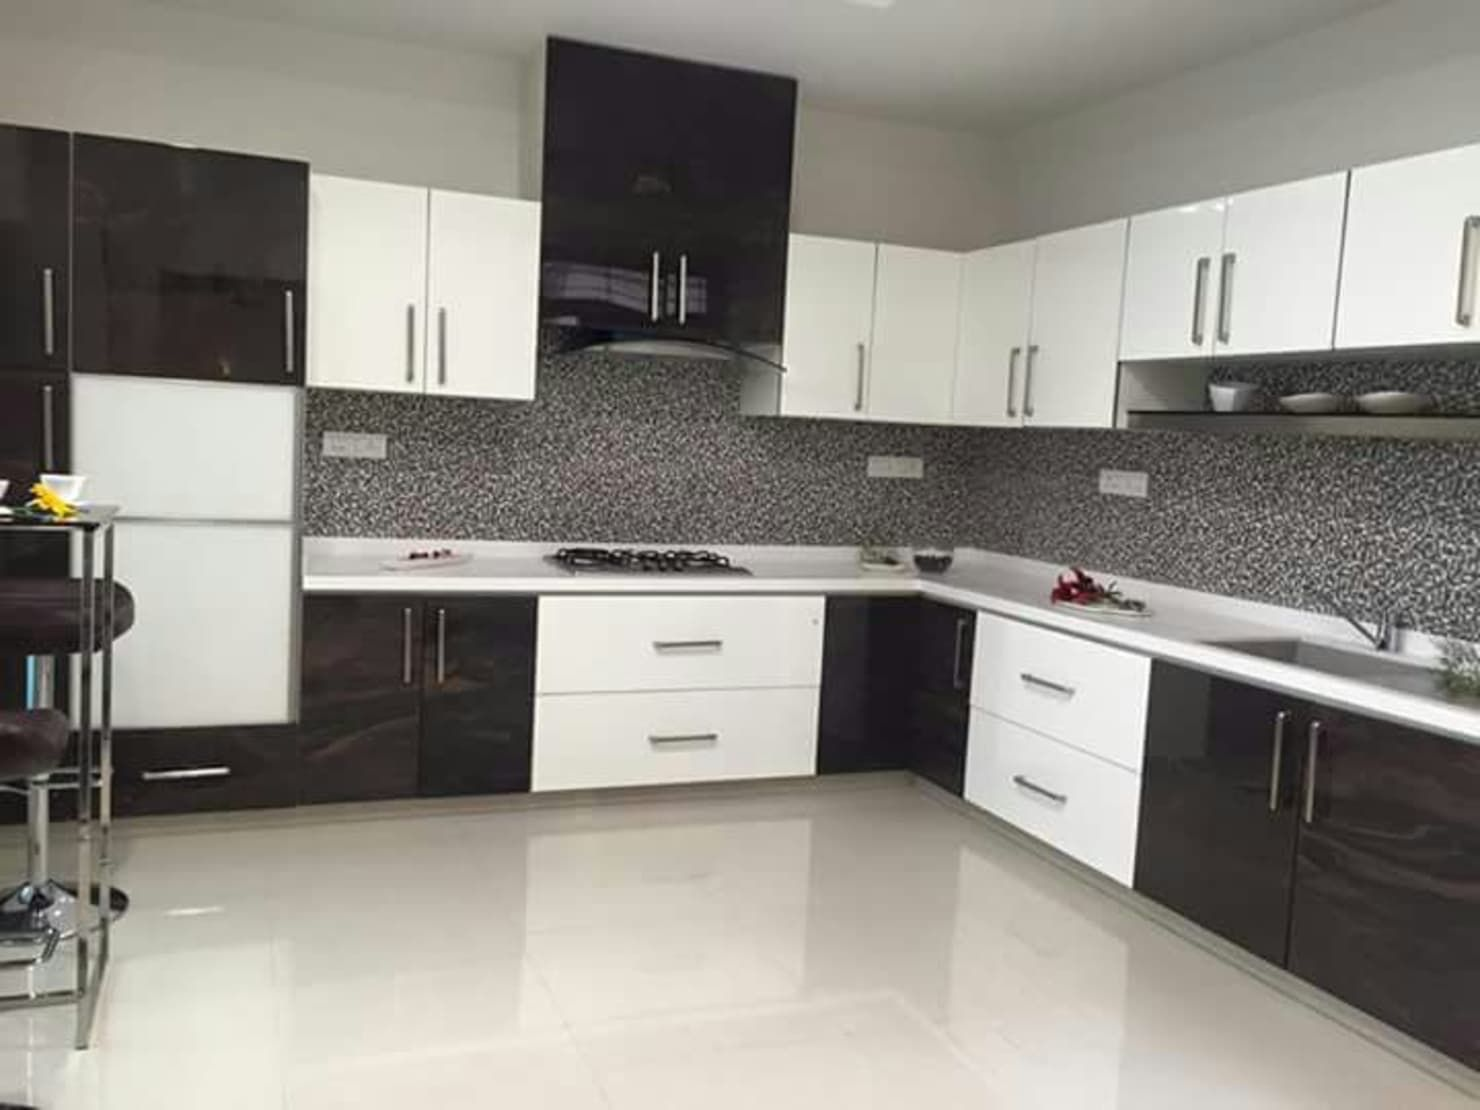 Kitchen cabinets and design woodcraft interior solutions ...